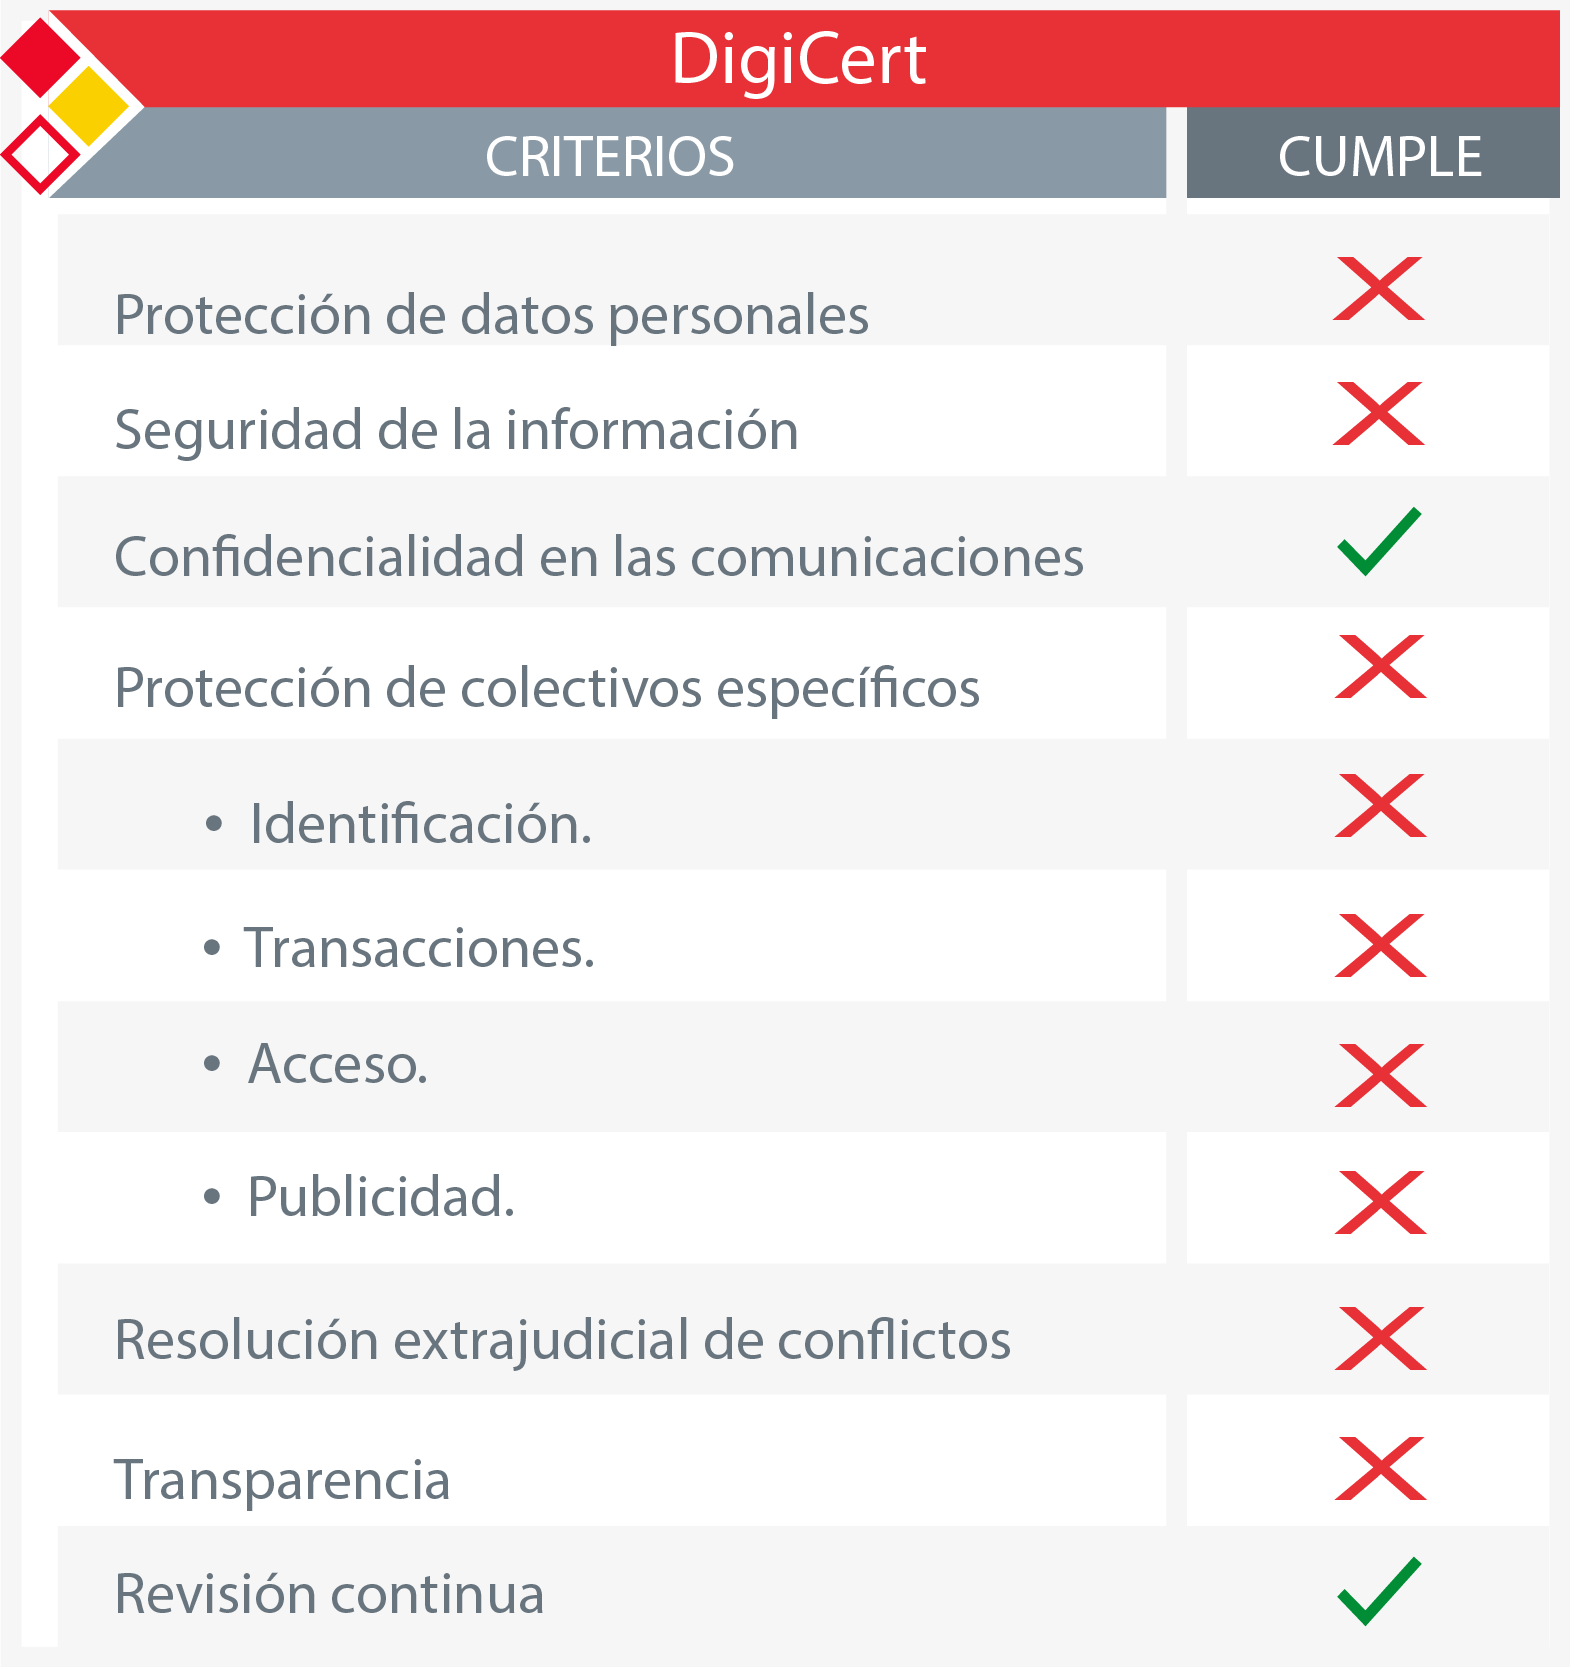 Tabla de criterios INCIBE para el sello Digicert